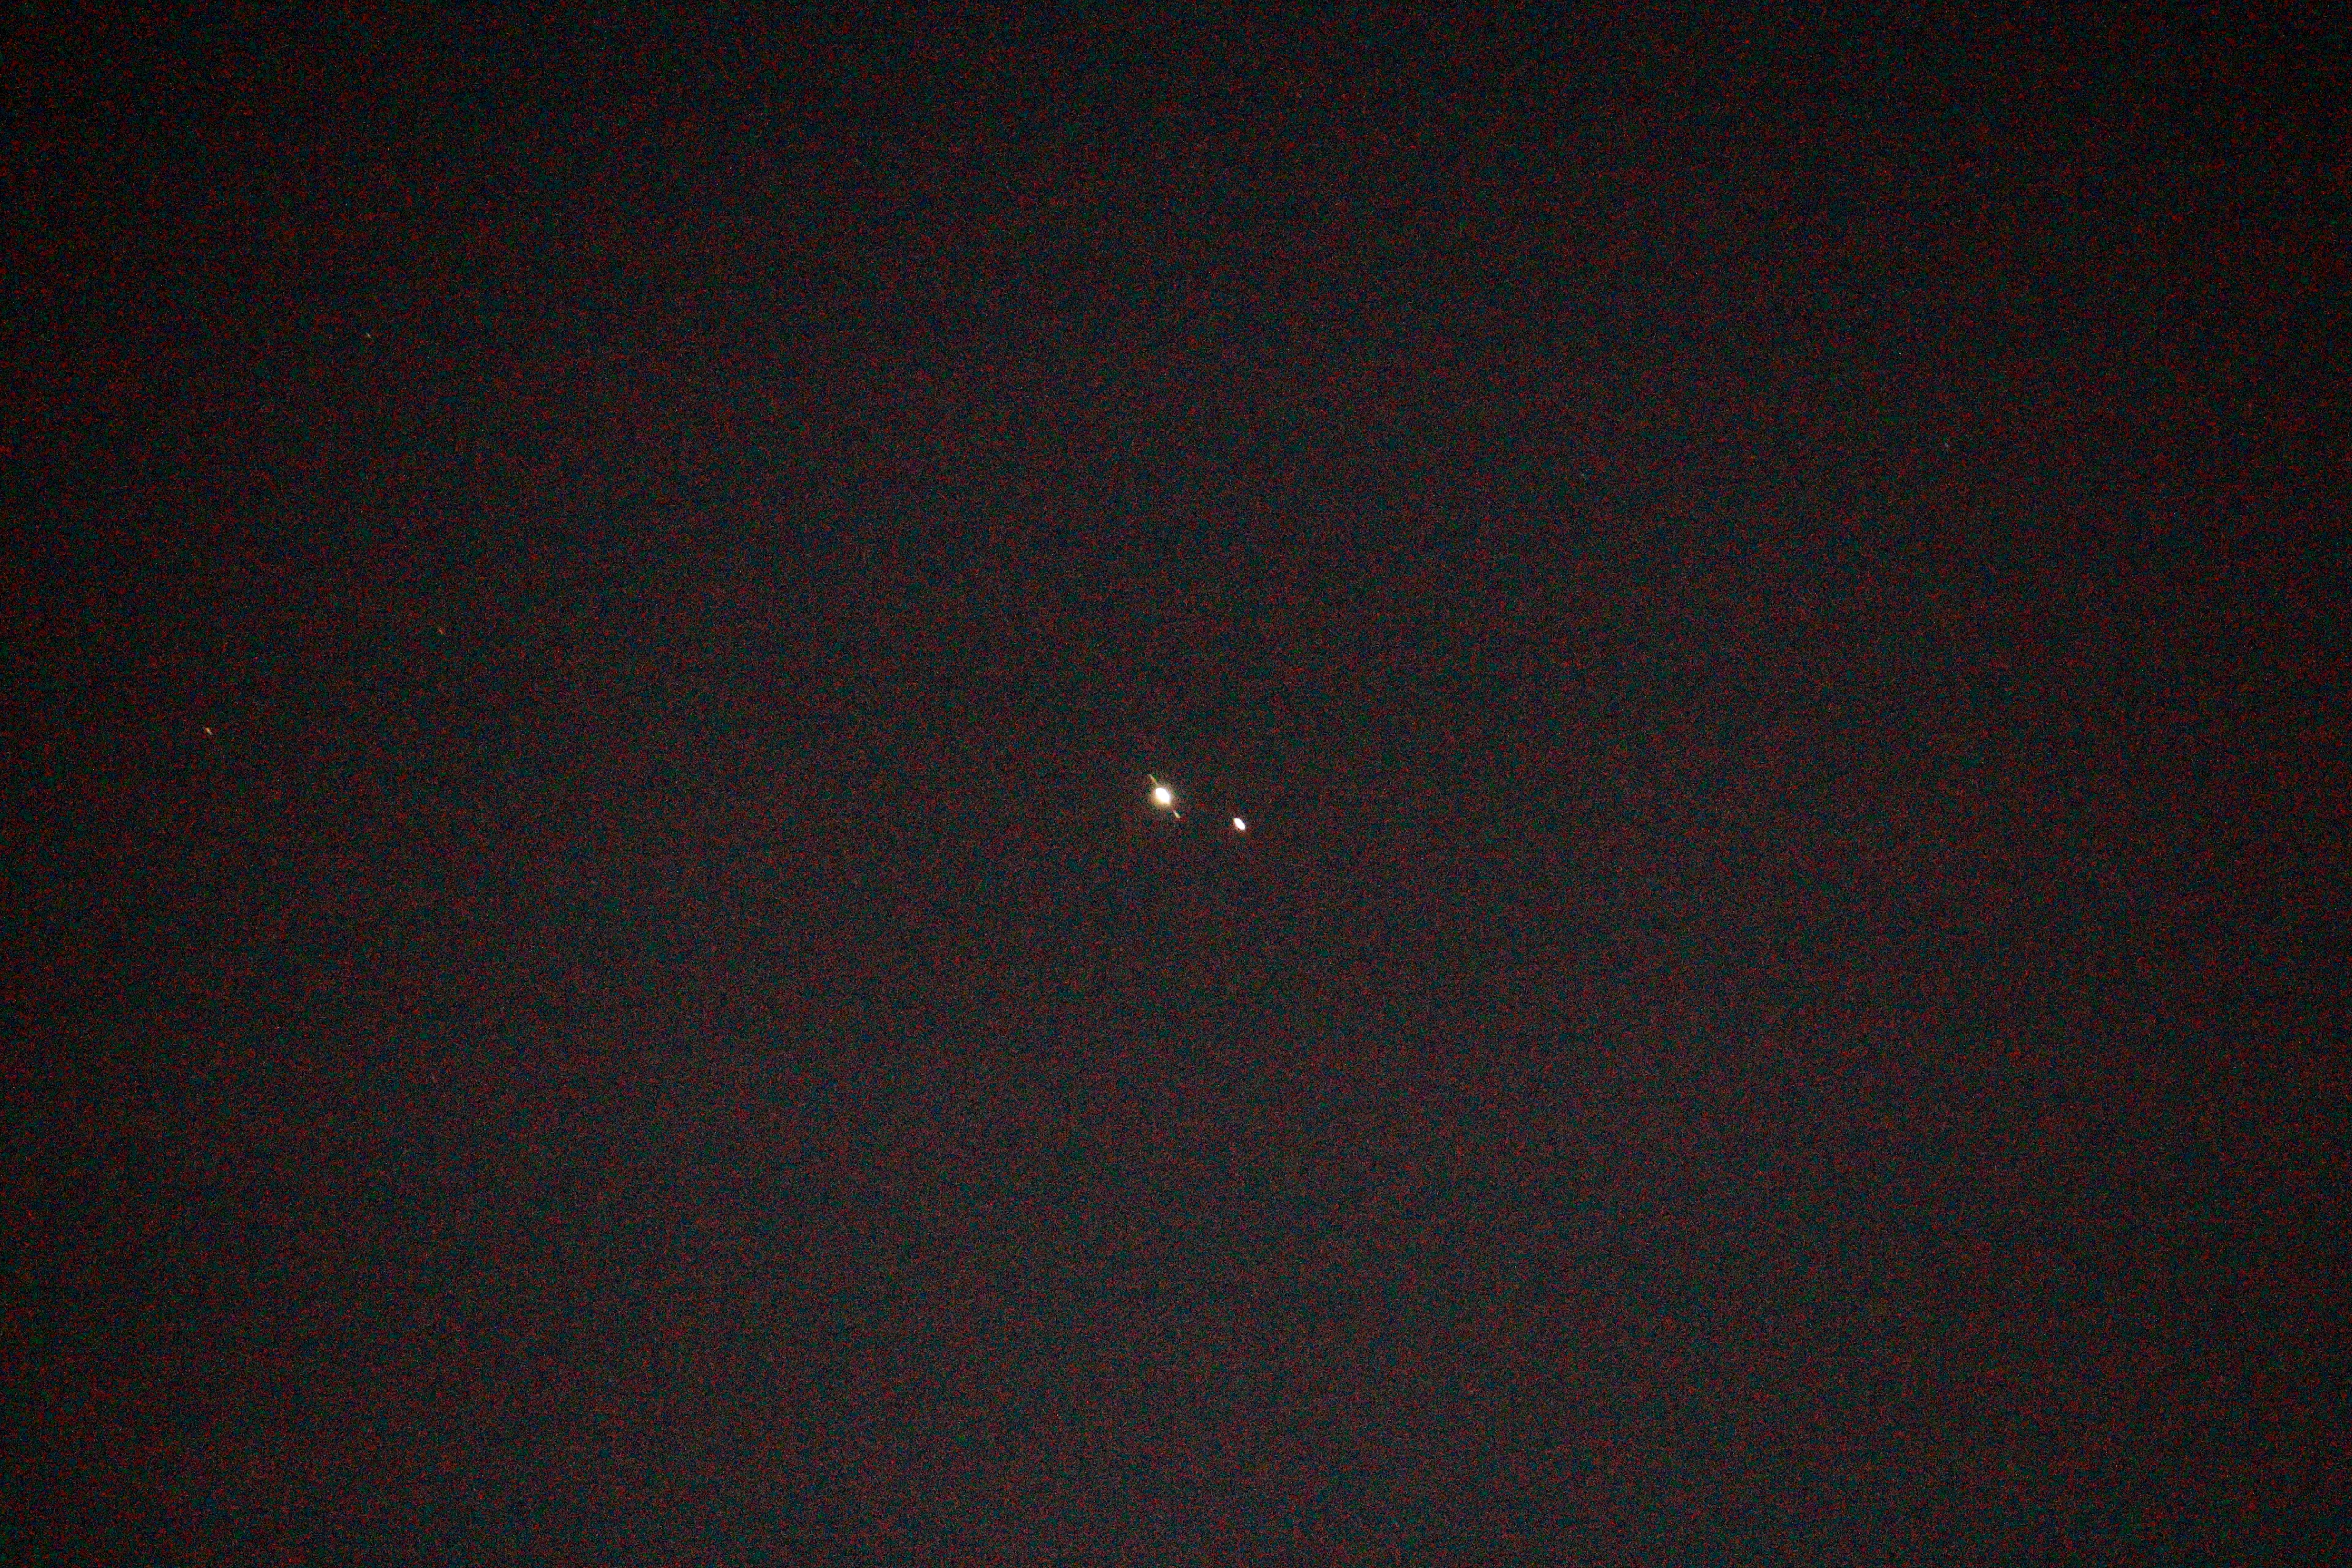 grand conjunction saturn and jupiter author lucke charlie